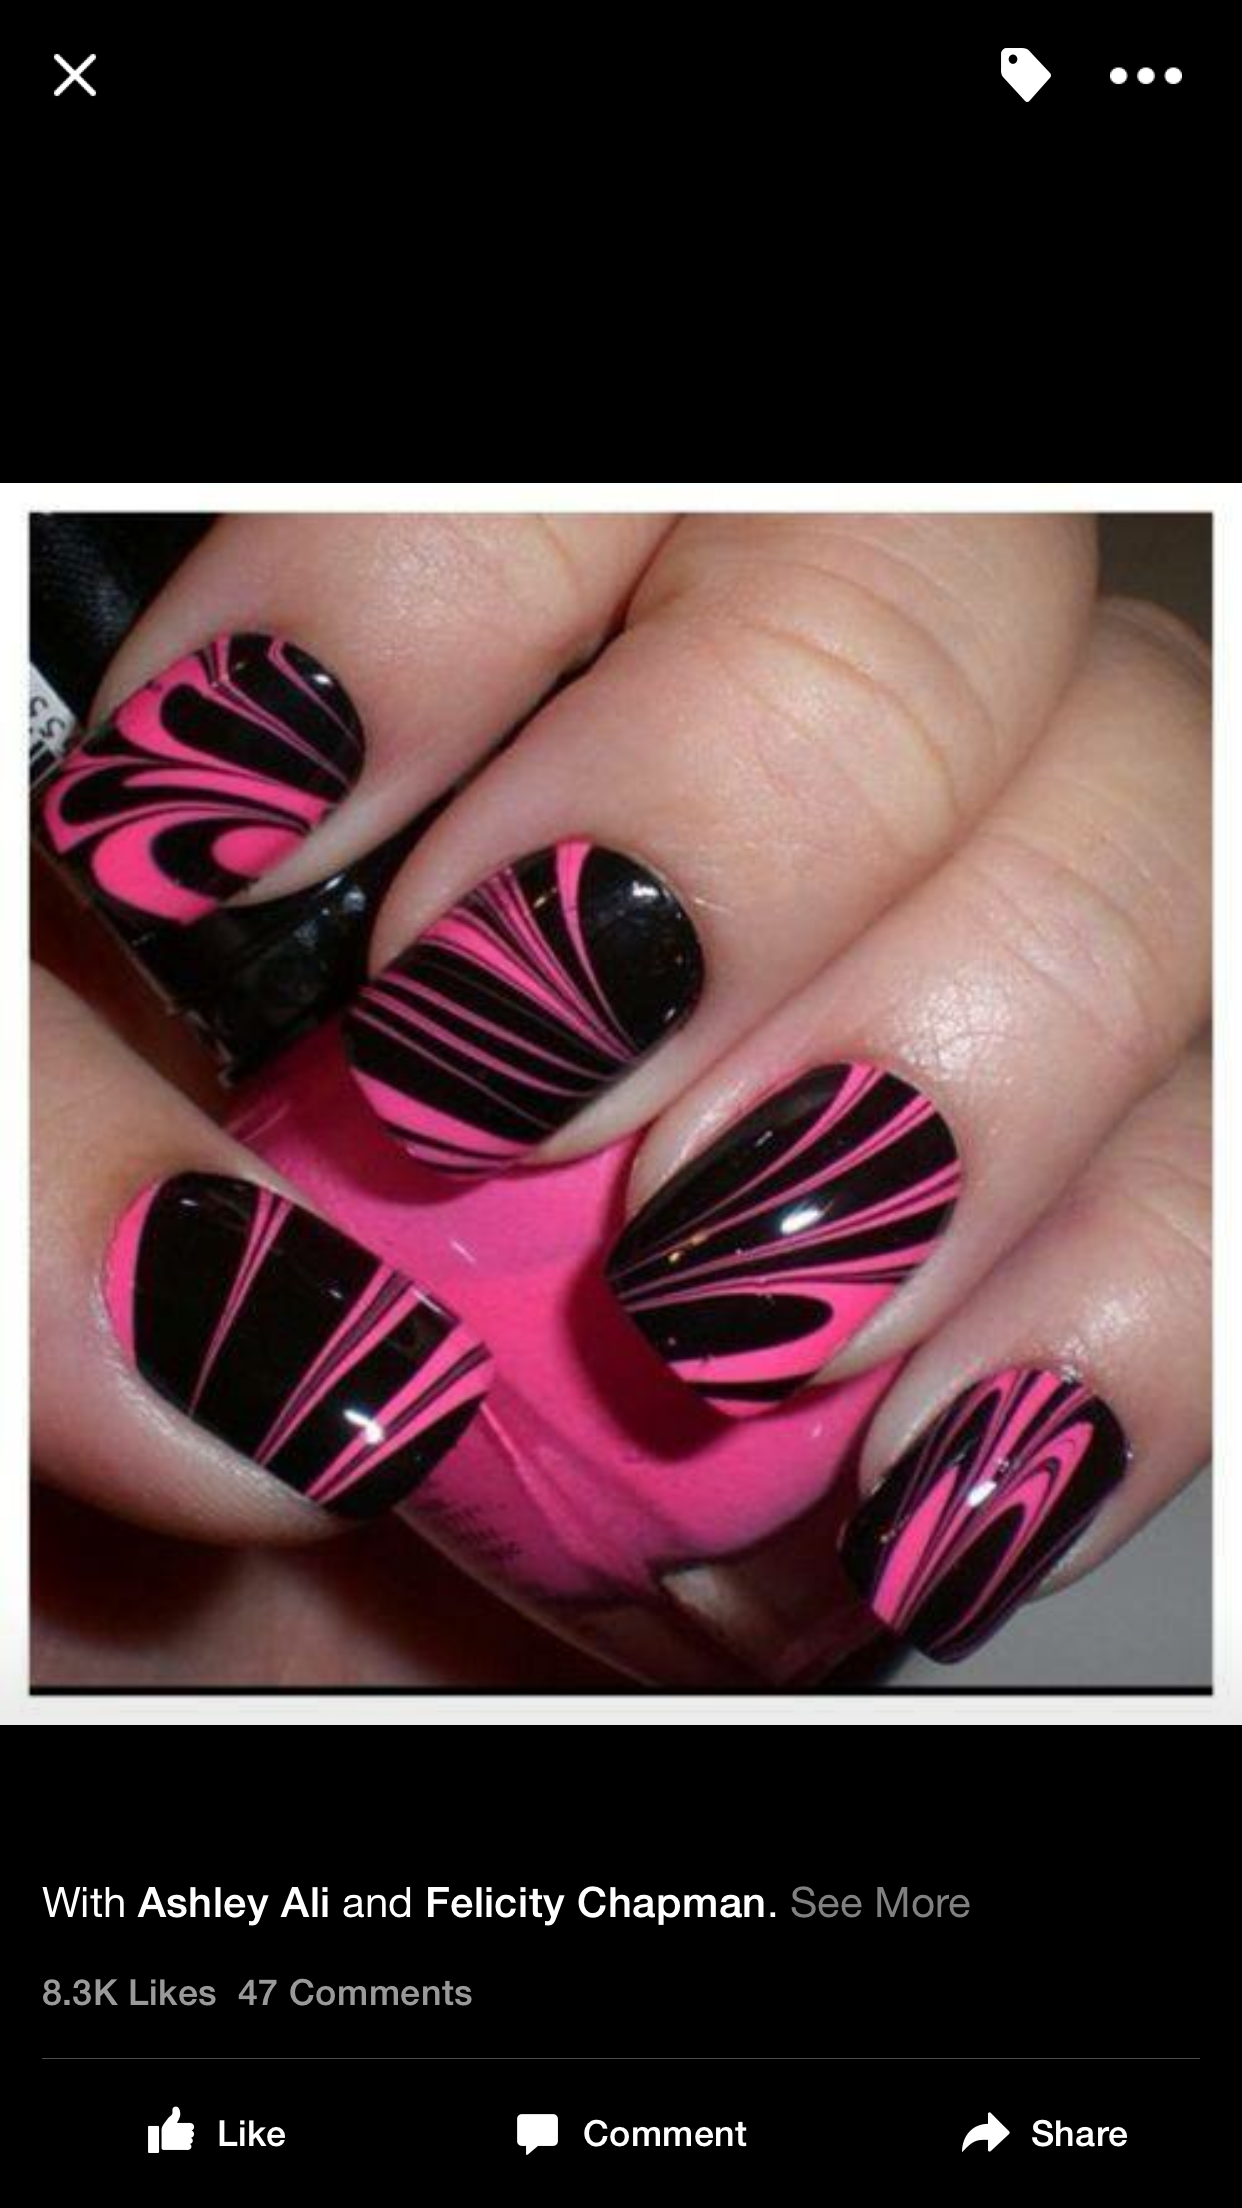 Pin von Temisha Josiah auf all about nails | Pinterest